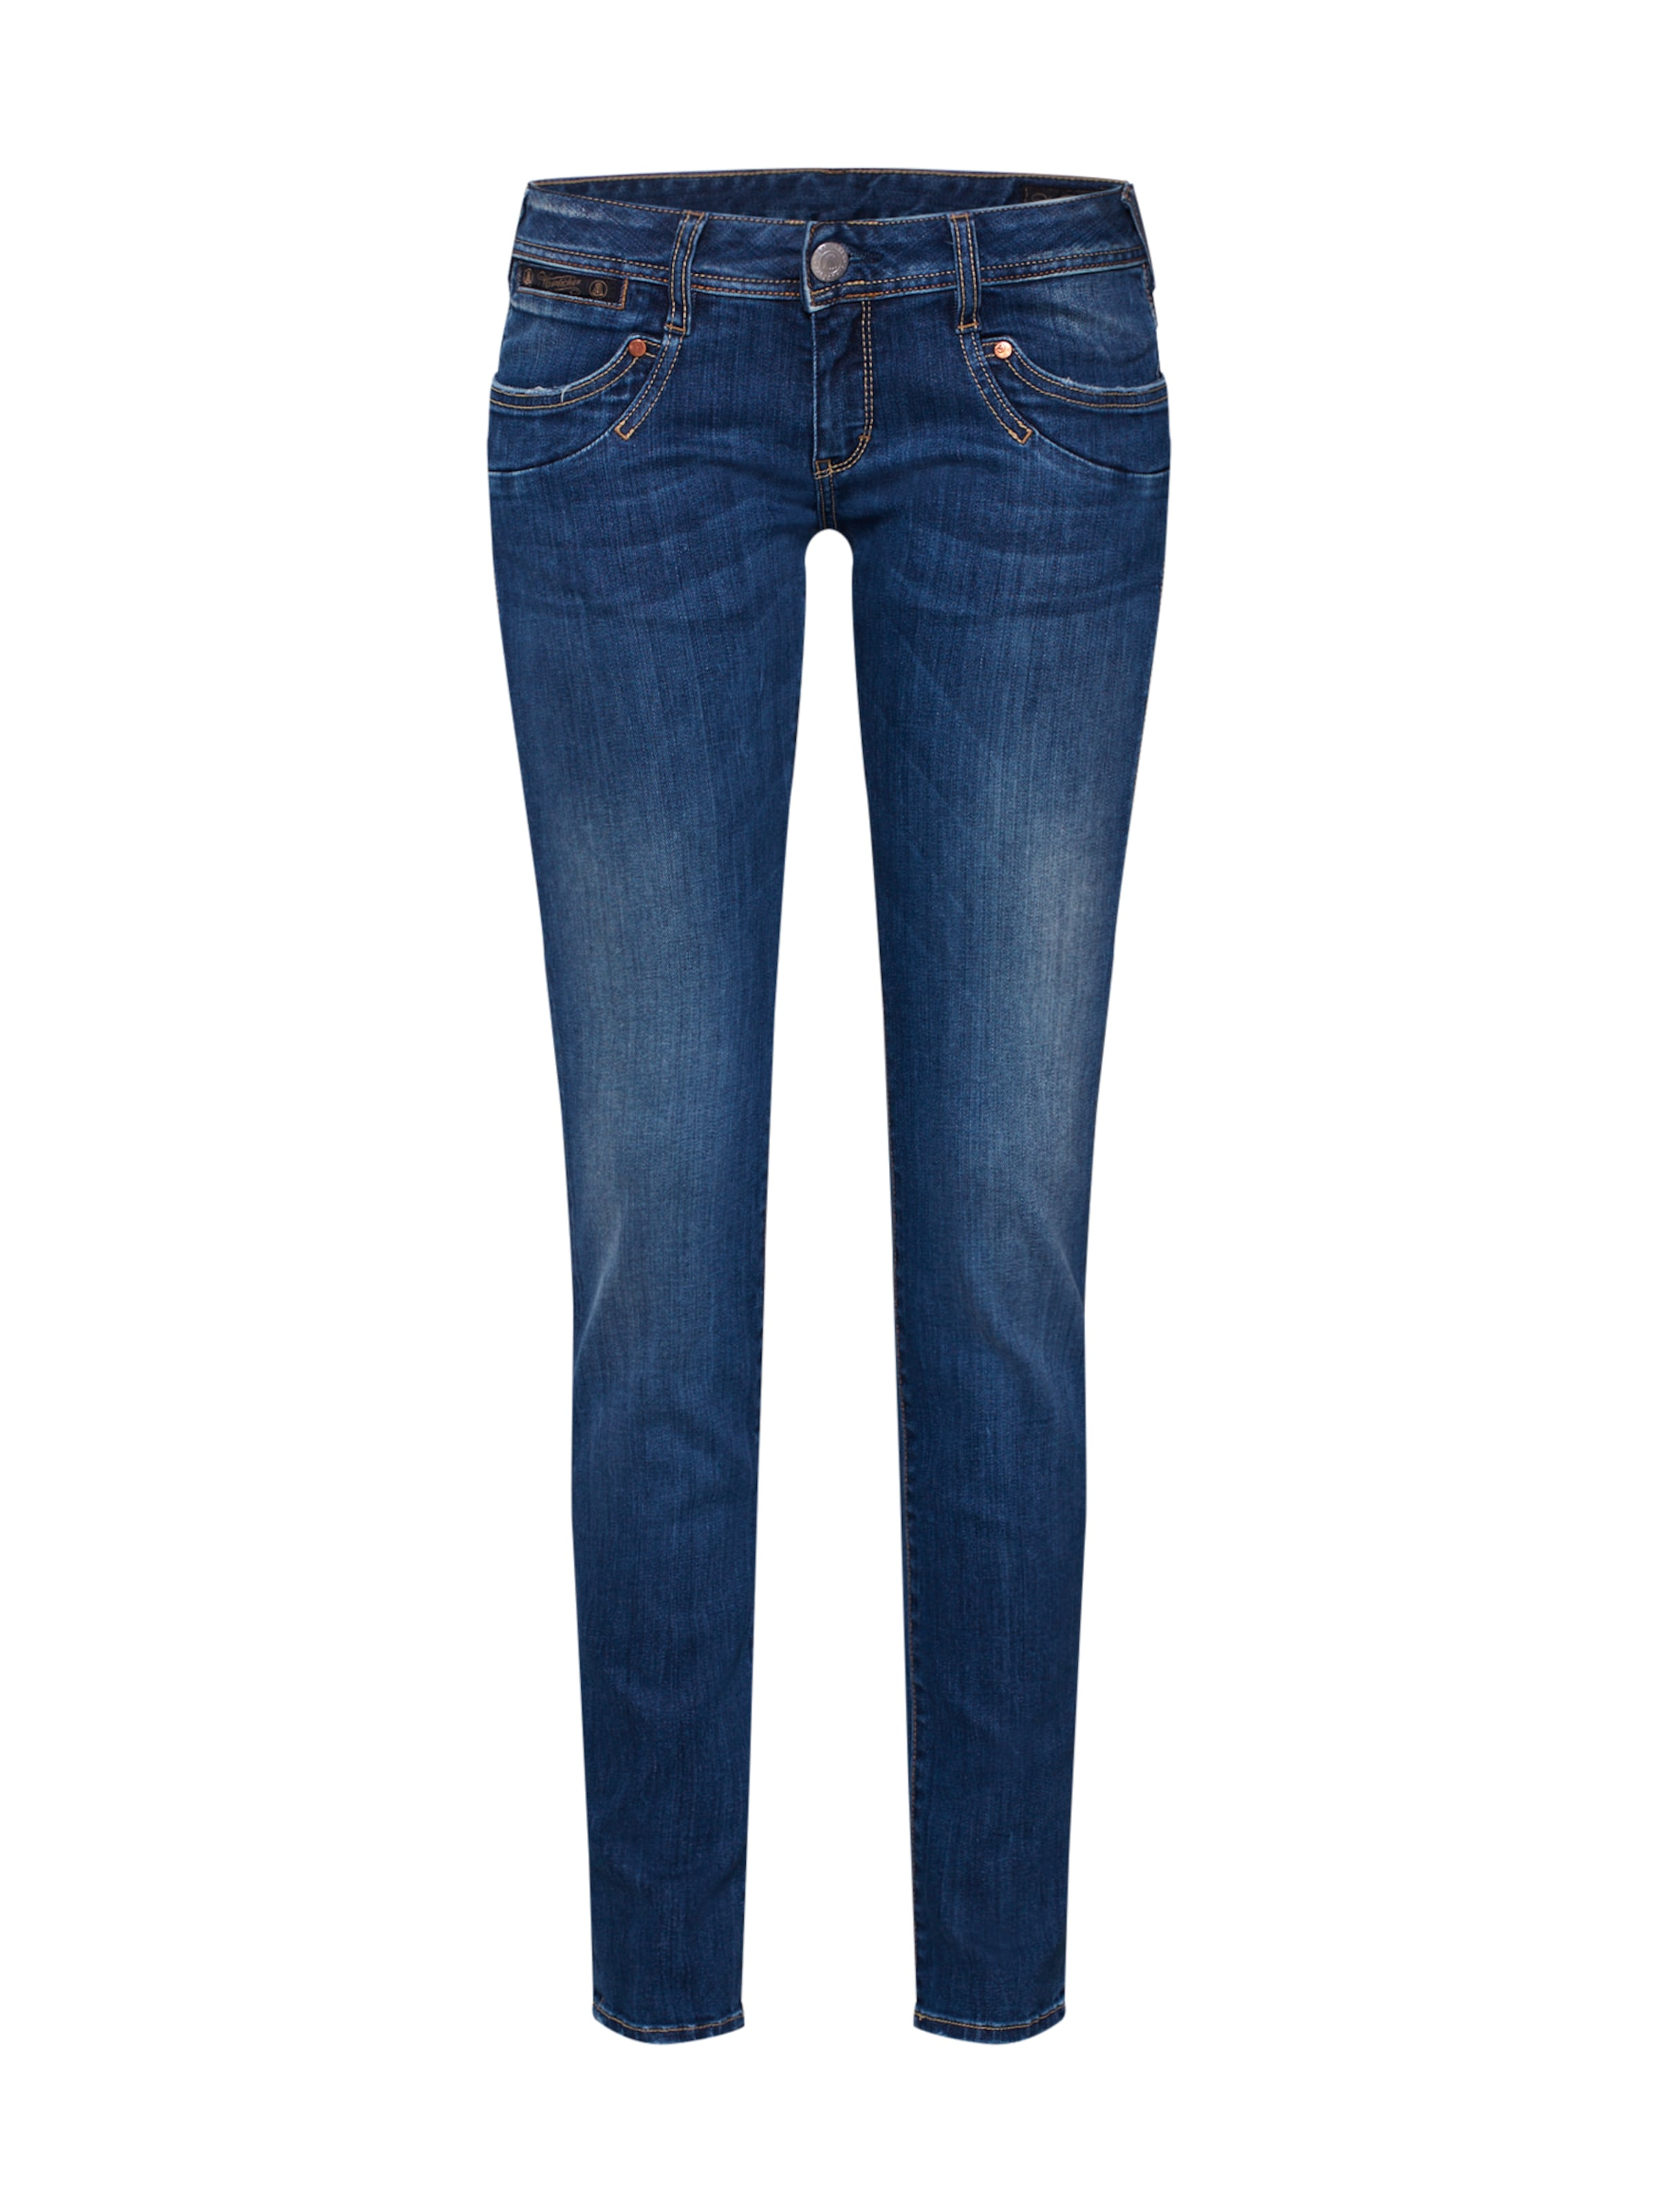 Bleu En Jean 'piper Denim Herrlicher Slim Powerstretch' CordxBe